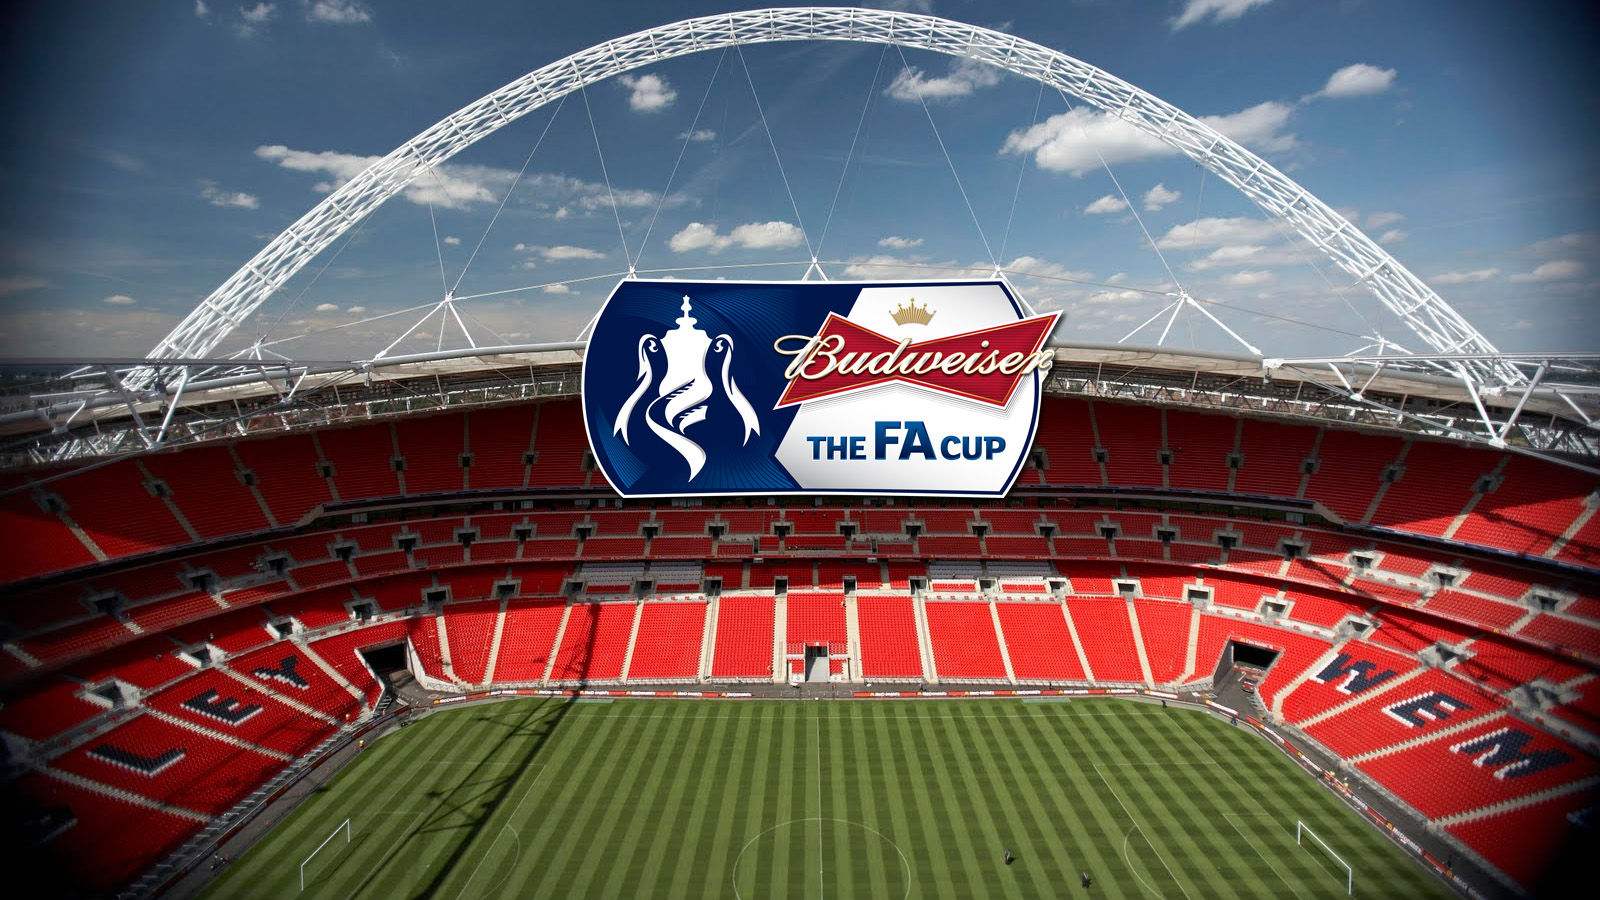 FA Cup Semi-Final: Limo Broker to Transport Liverpool Fans to Wembley